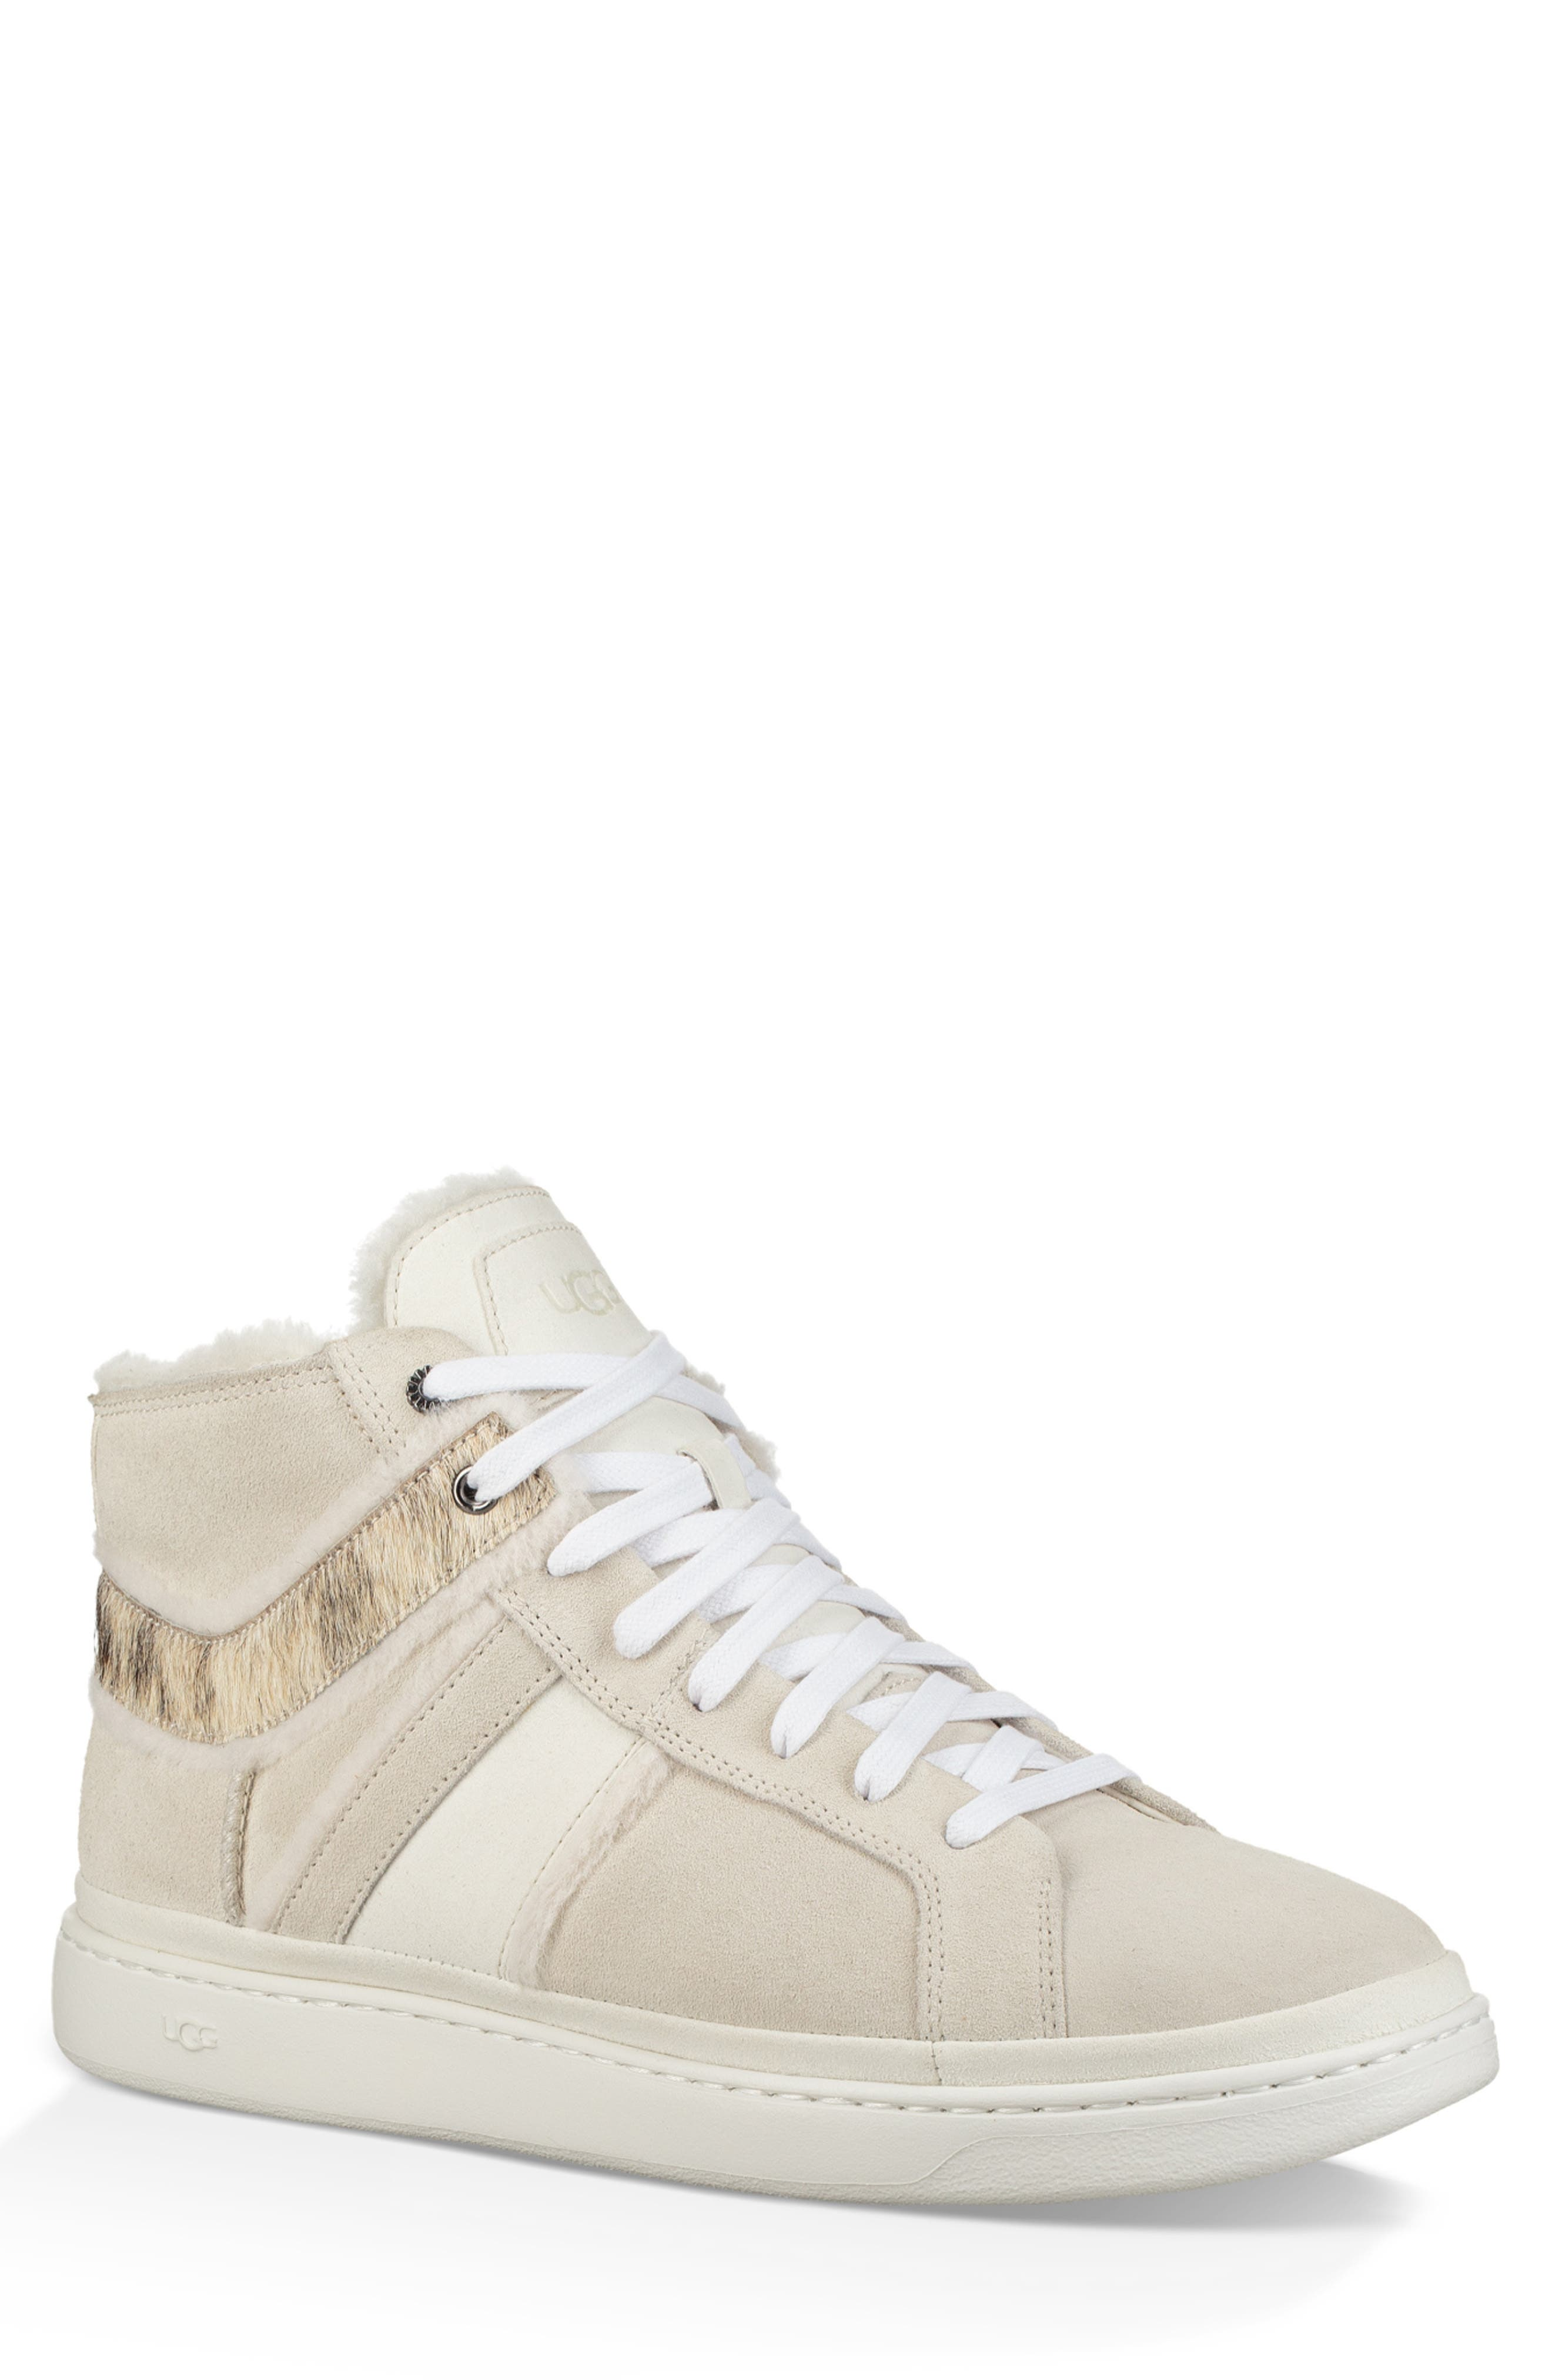 Cali High Top Sneaker,                             Main thumbnail 1, color,                             WHITE